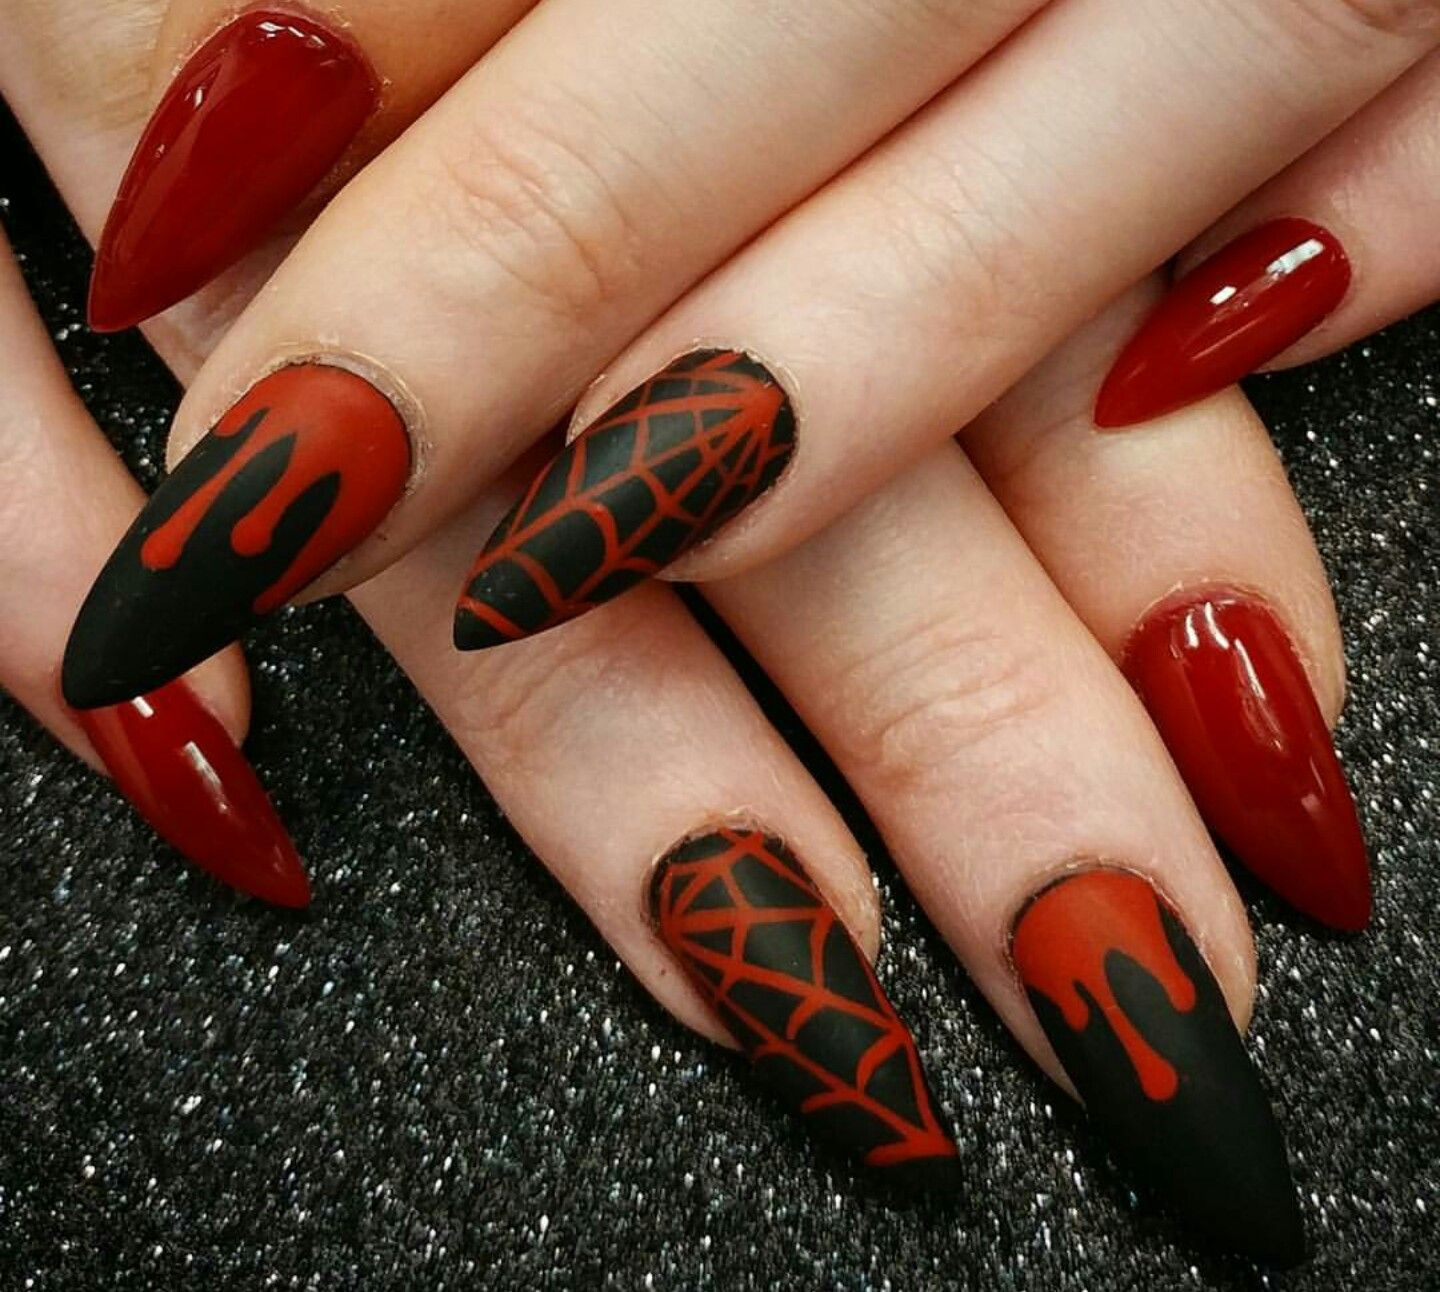 Pin by Arlene Elizabeth on Claws | Goth nails, Halloween ...